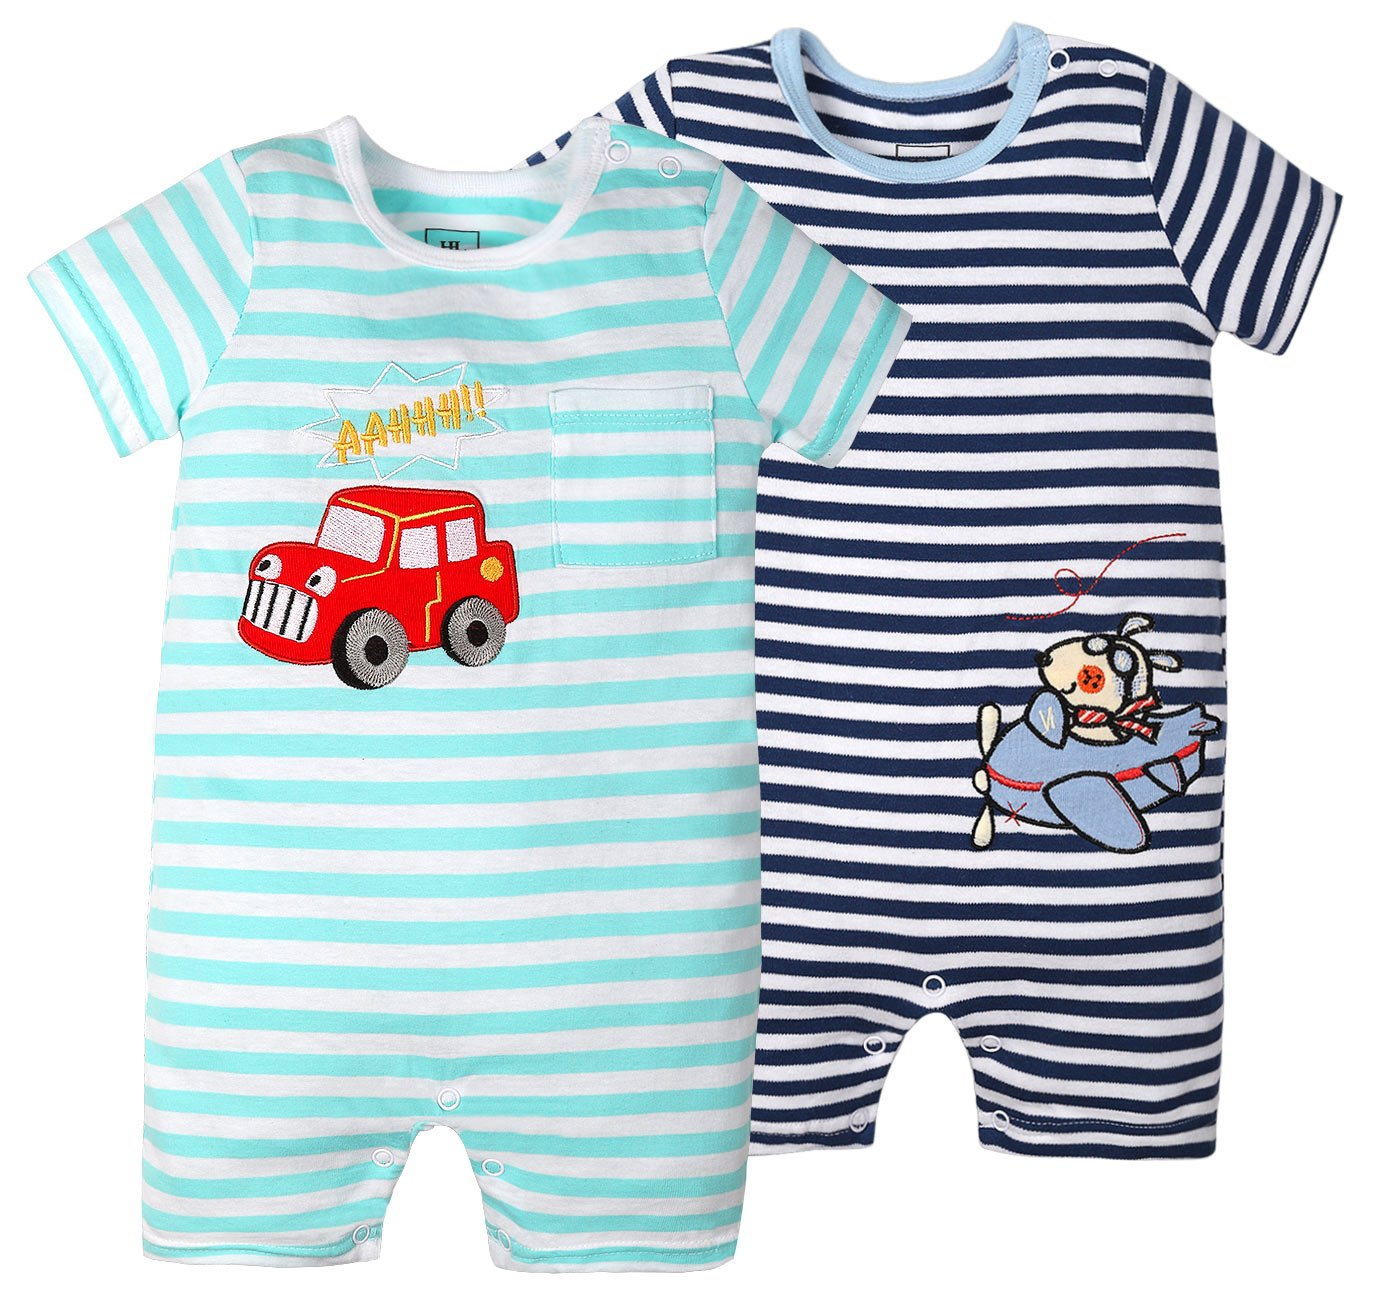 Baby Boys'2 Pack Jumpsuit Yarn-Dyed Striped Baby Onesies Set Summer (Short Jumpsuit(Plan+car), 9-12 mon THS)